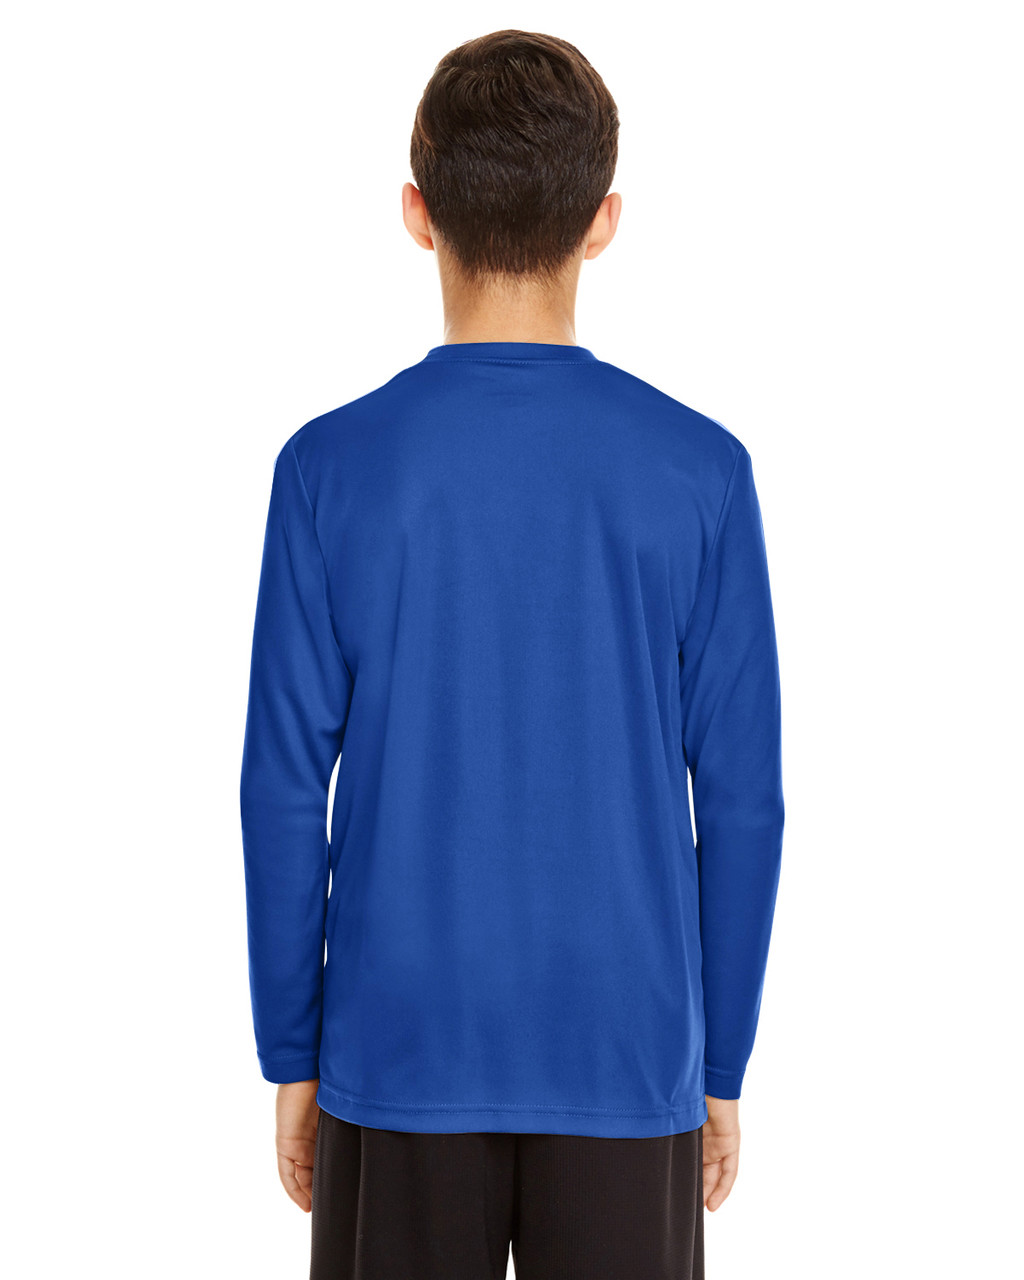 Sport Royal - Back, TT11YL Team365 Youth Zone Performance Long Sleeve T-shirt | BlankClothing.ca